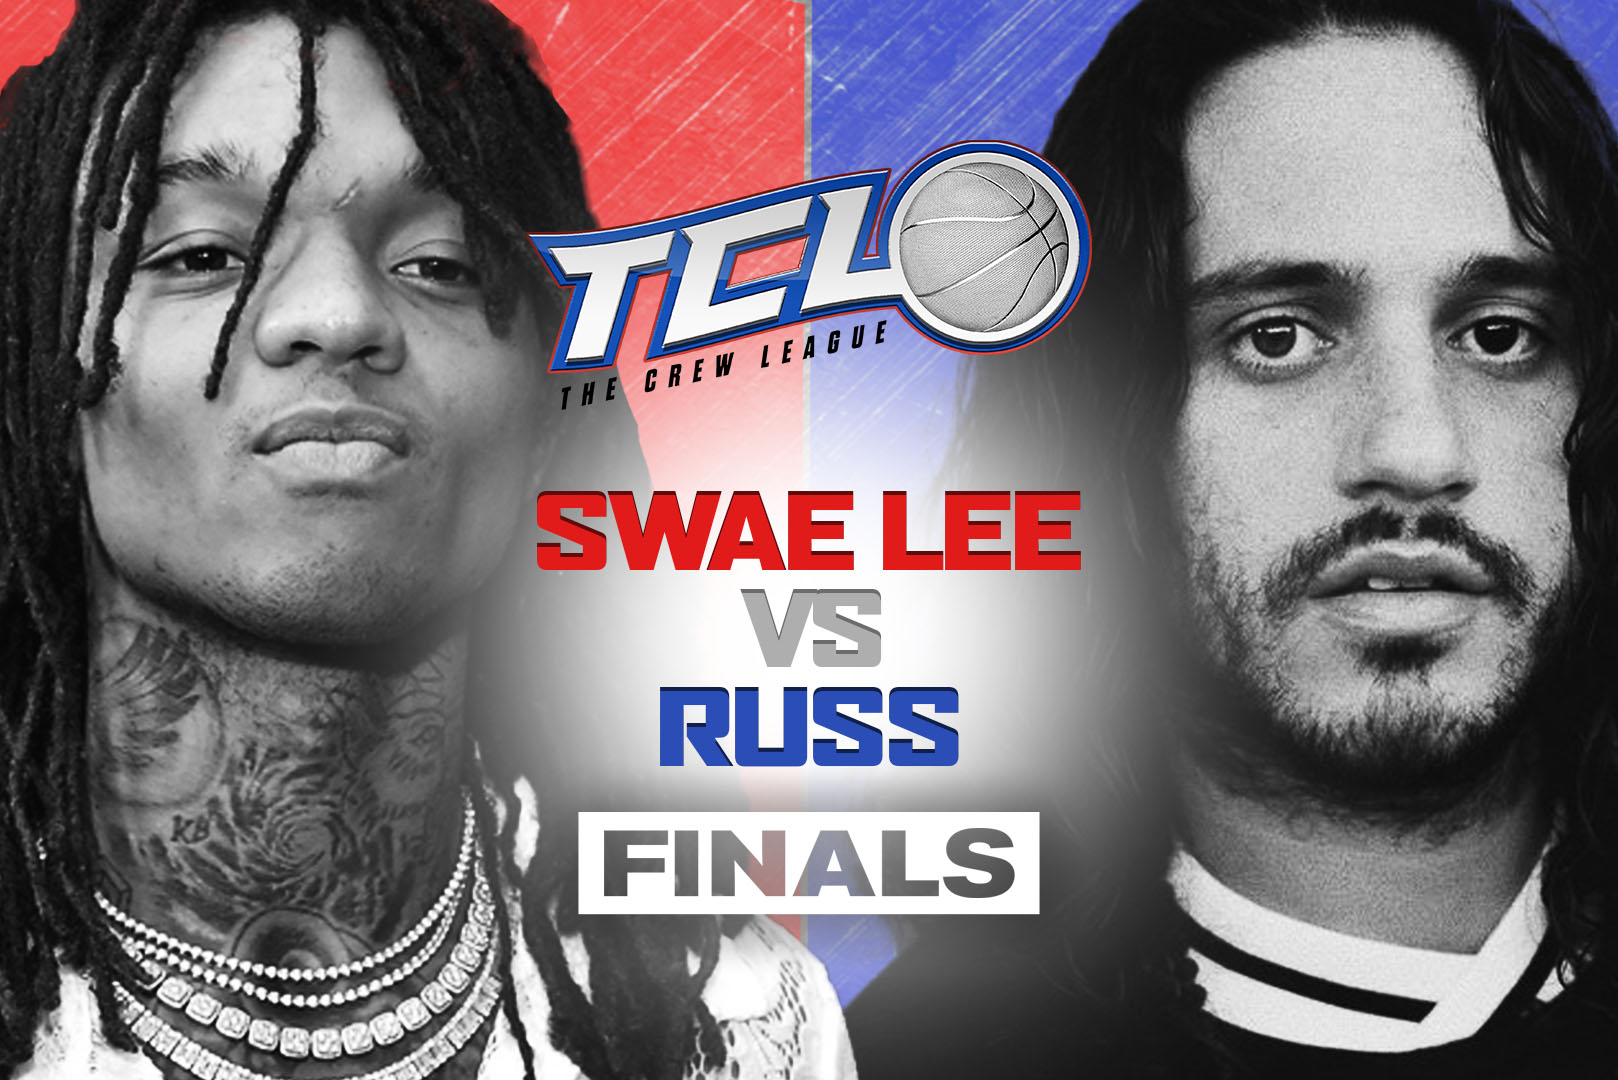 Swae Lee and Russ